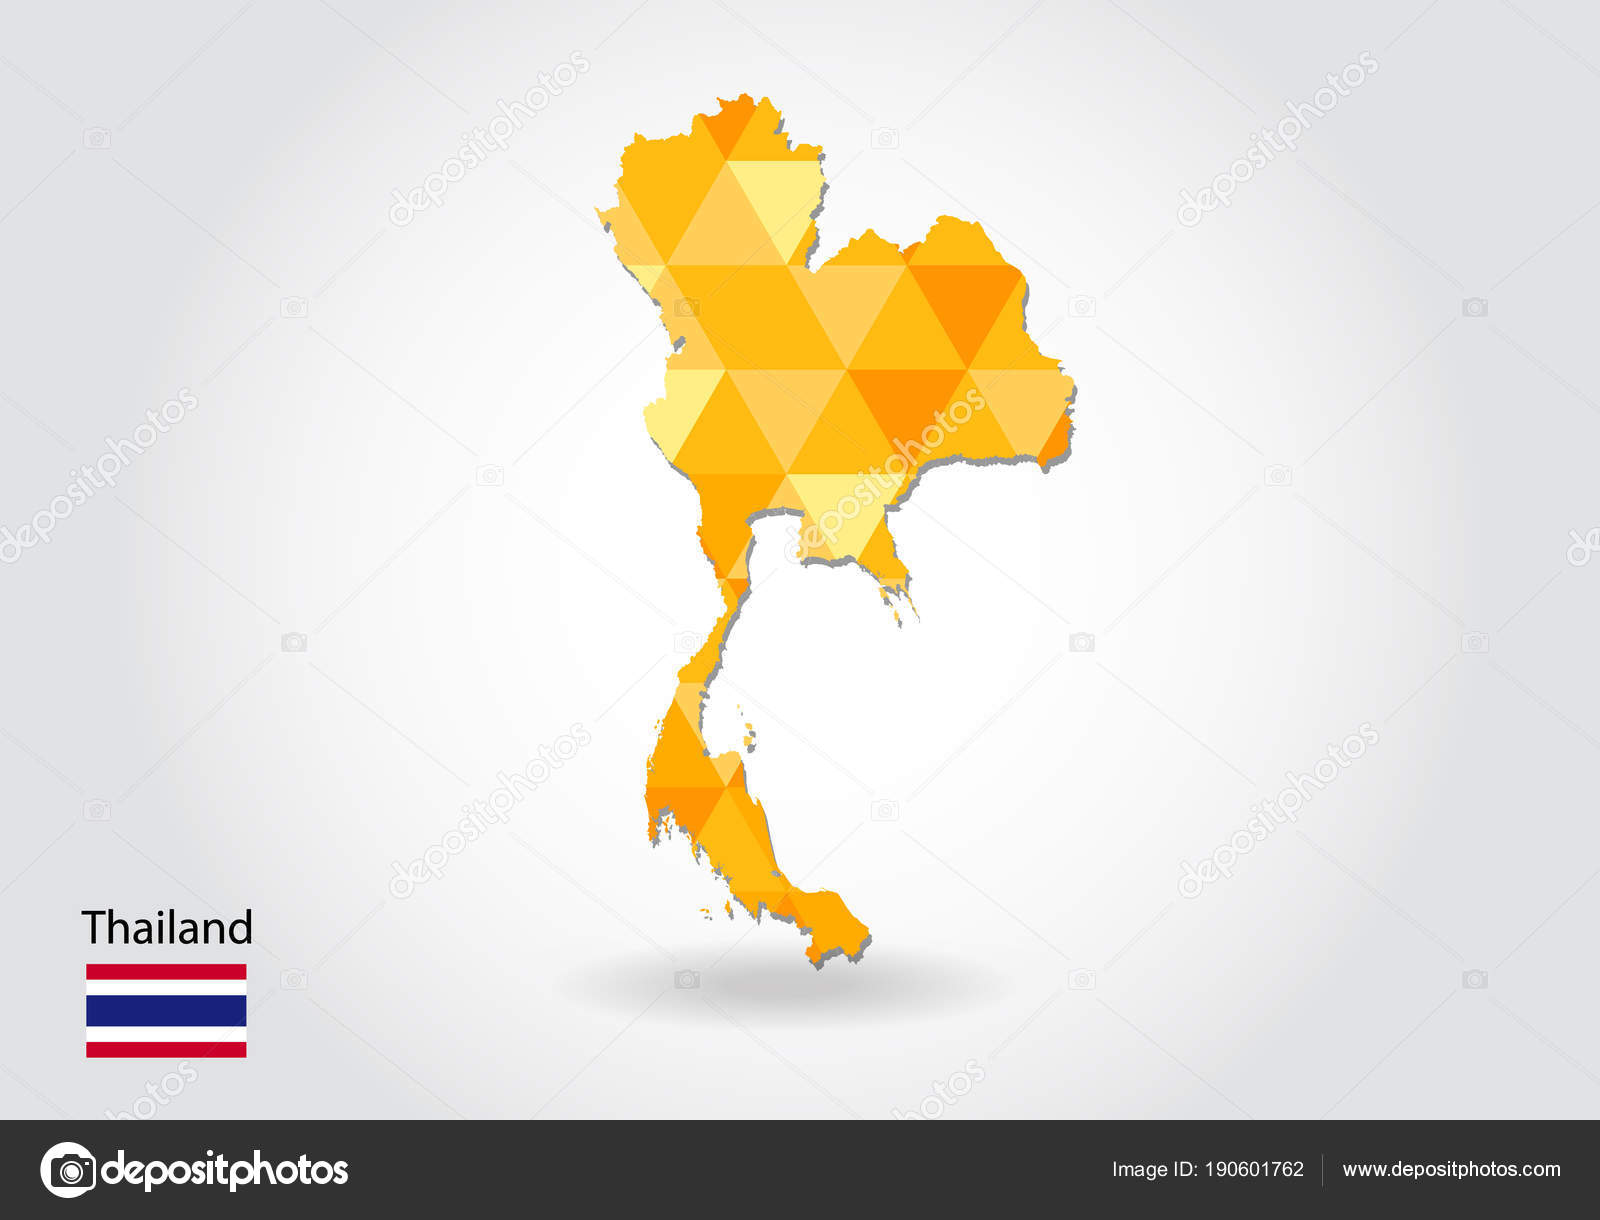 Geometric Polygonal Style Vector Map Thailand Low Poly Map ...